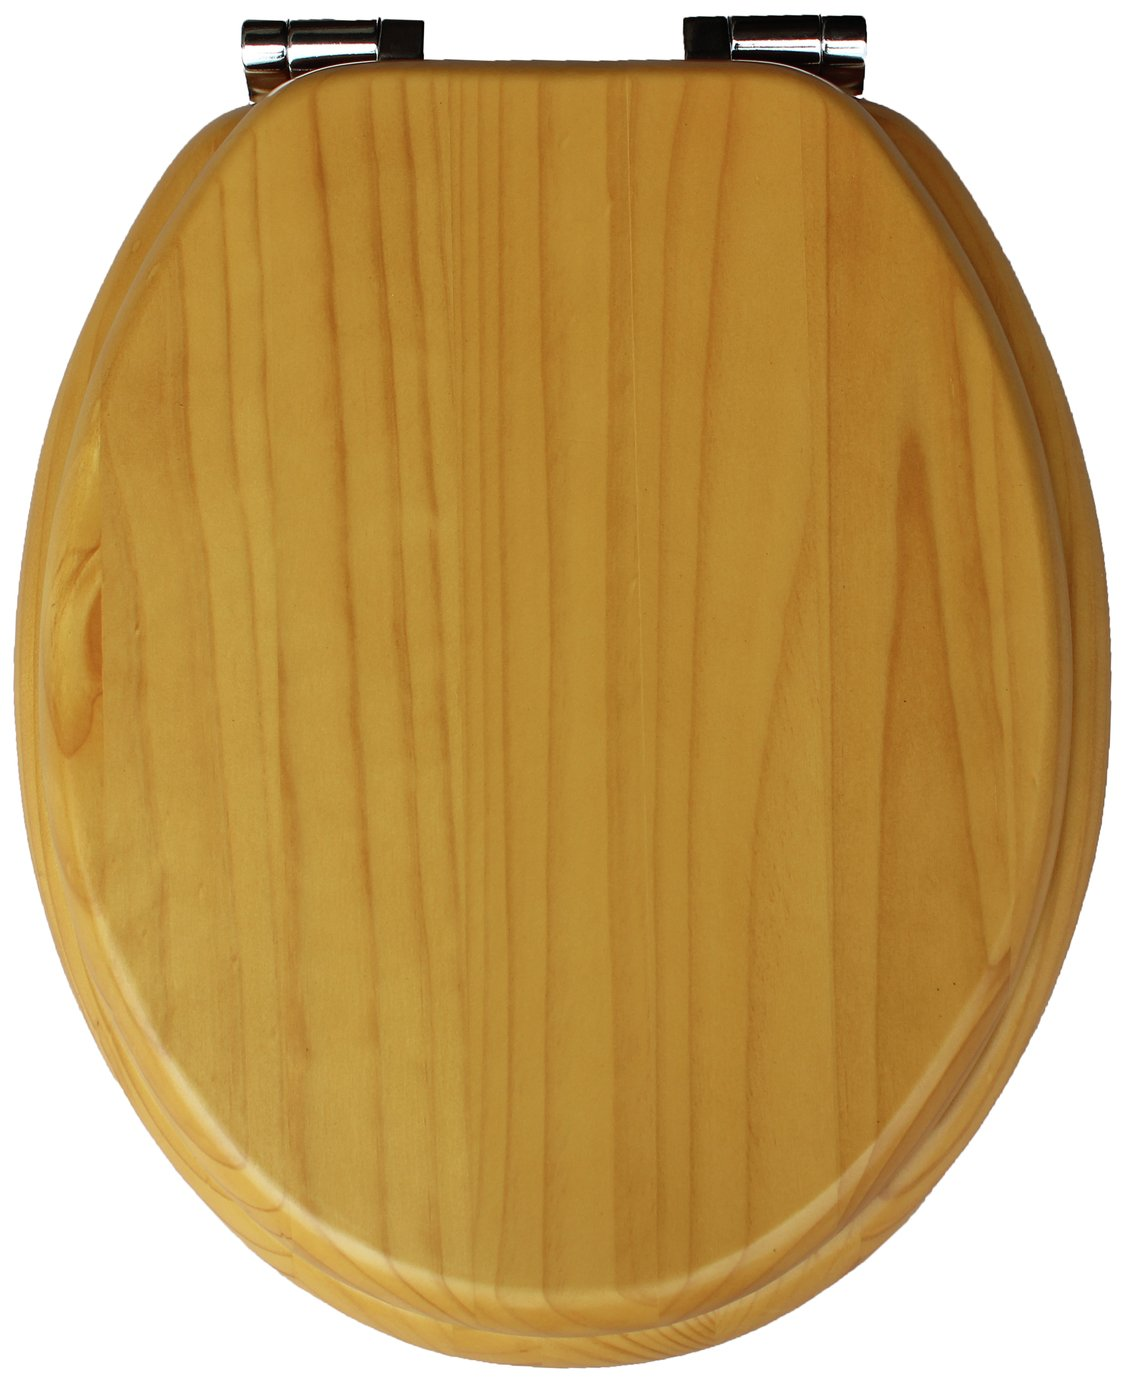 Collection Solid Wood Slow Close Toilet Seat - Light Oak167/9193